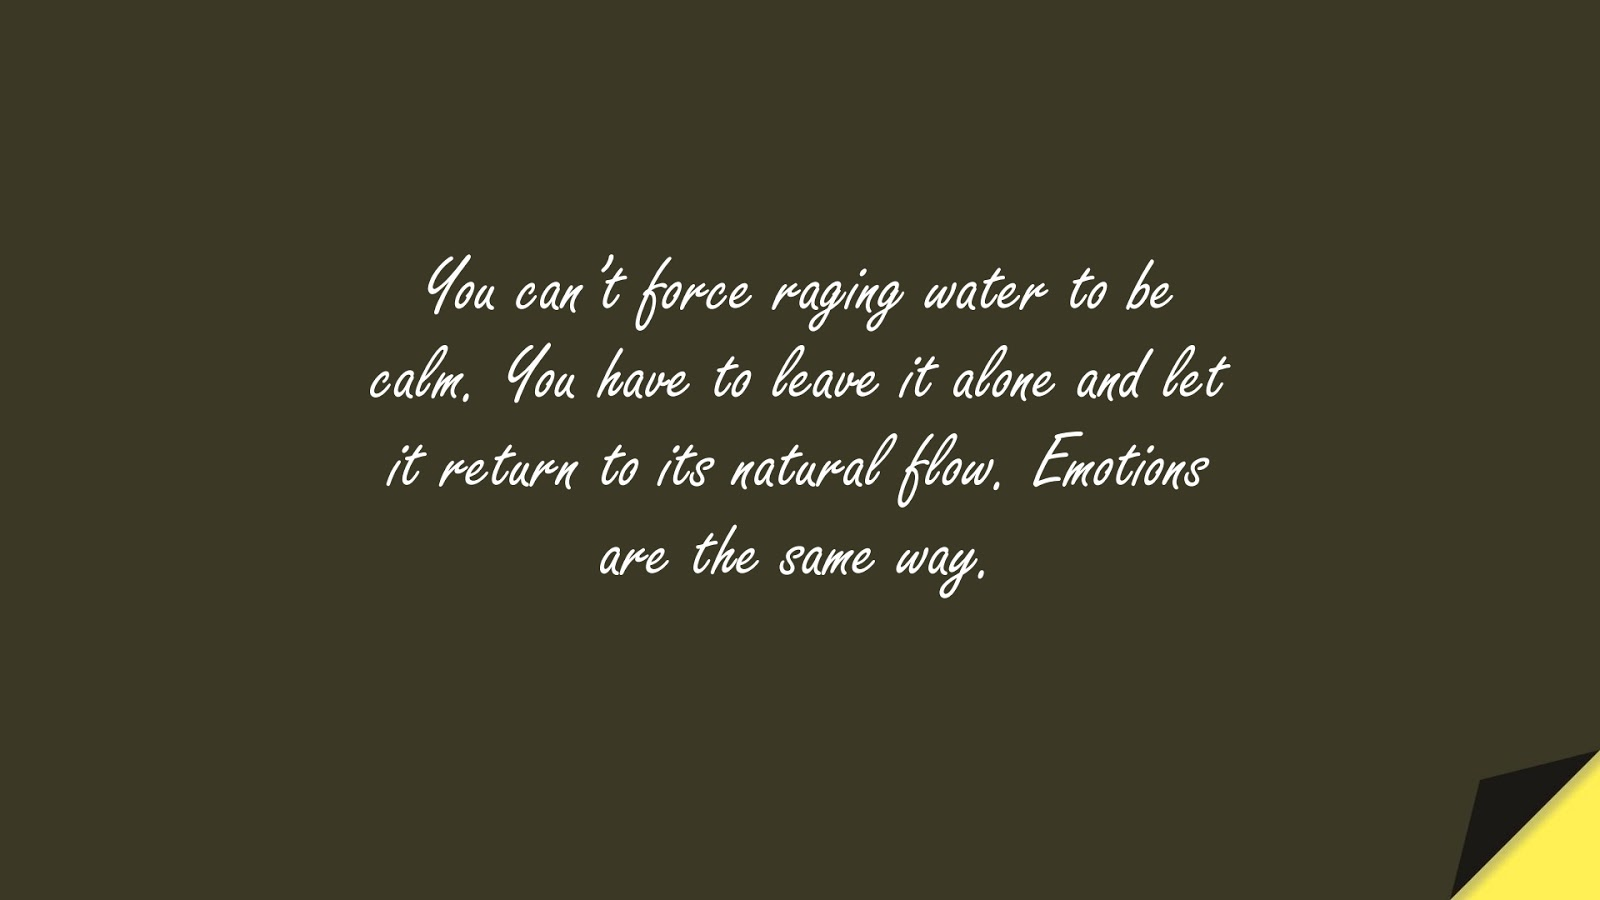 You can't force raging water to be calm. You have to leave it alone and let it return to its natural flow. Emotions are the same way.FALSE